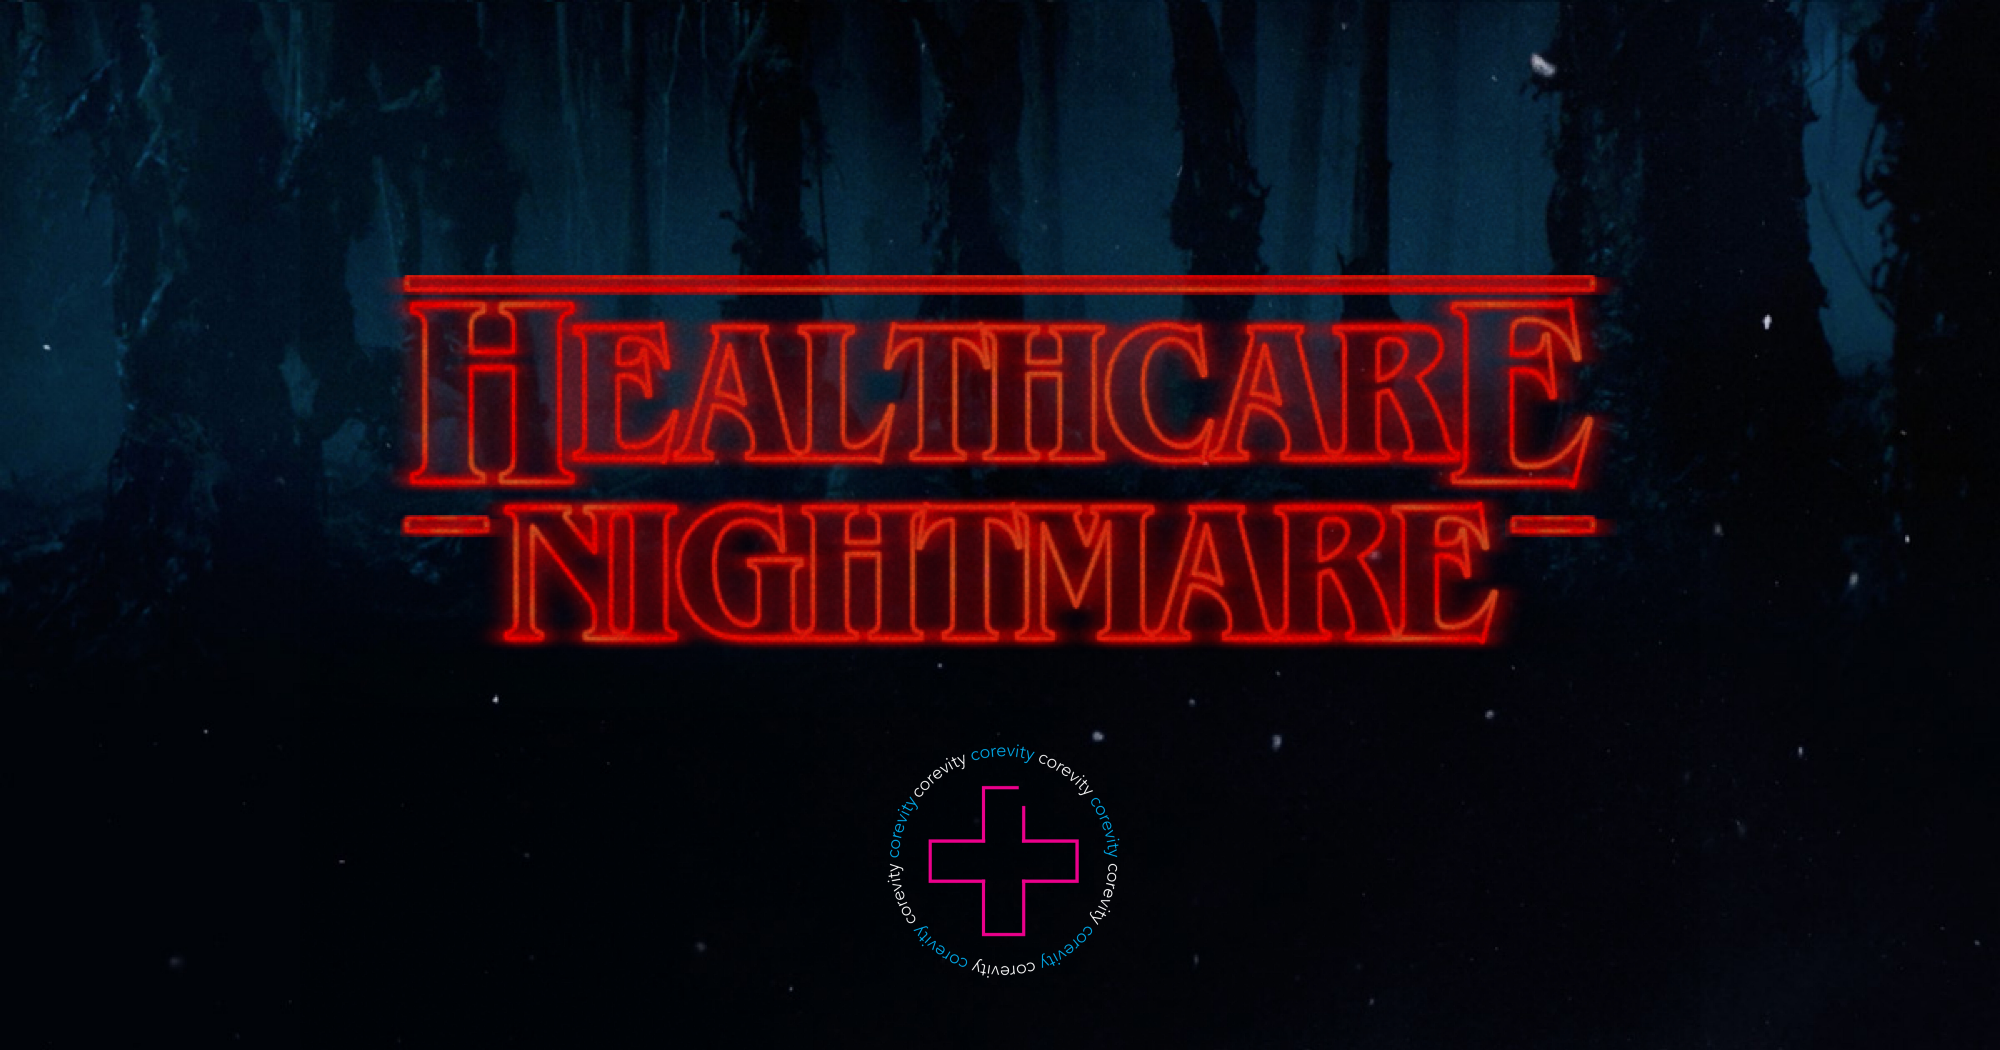 Why is American Healthcare a Nightmare? http//www